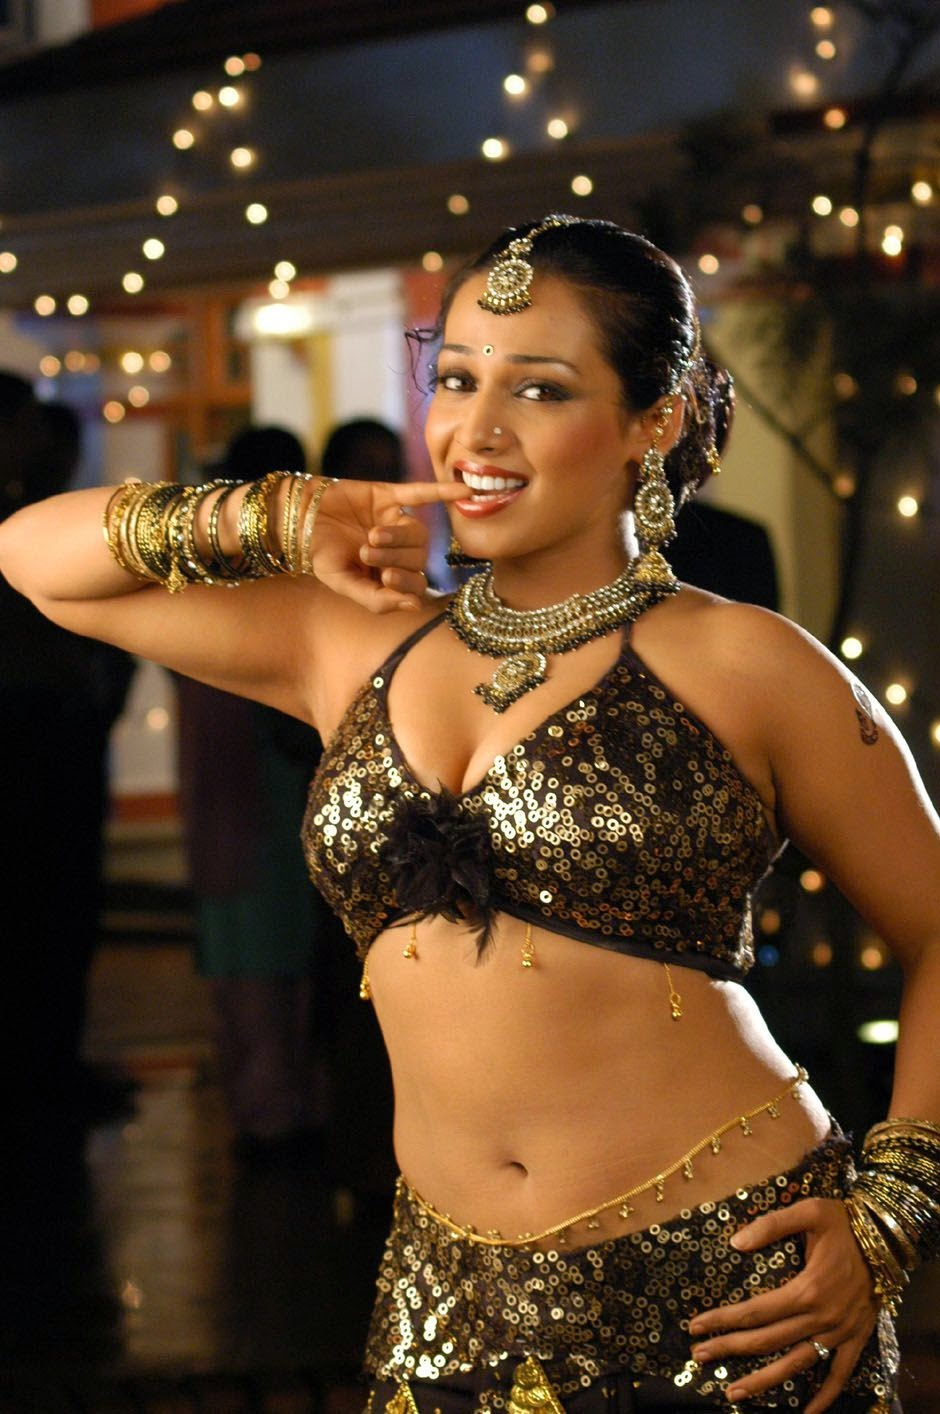 bollywood actresses pictures photos images south indian